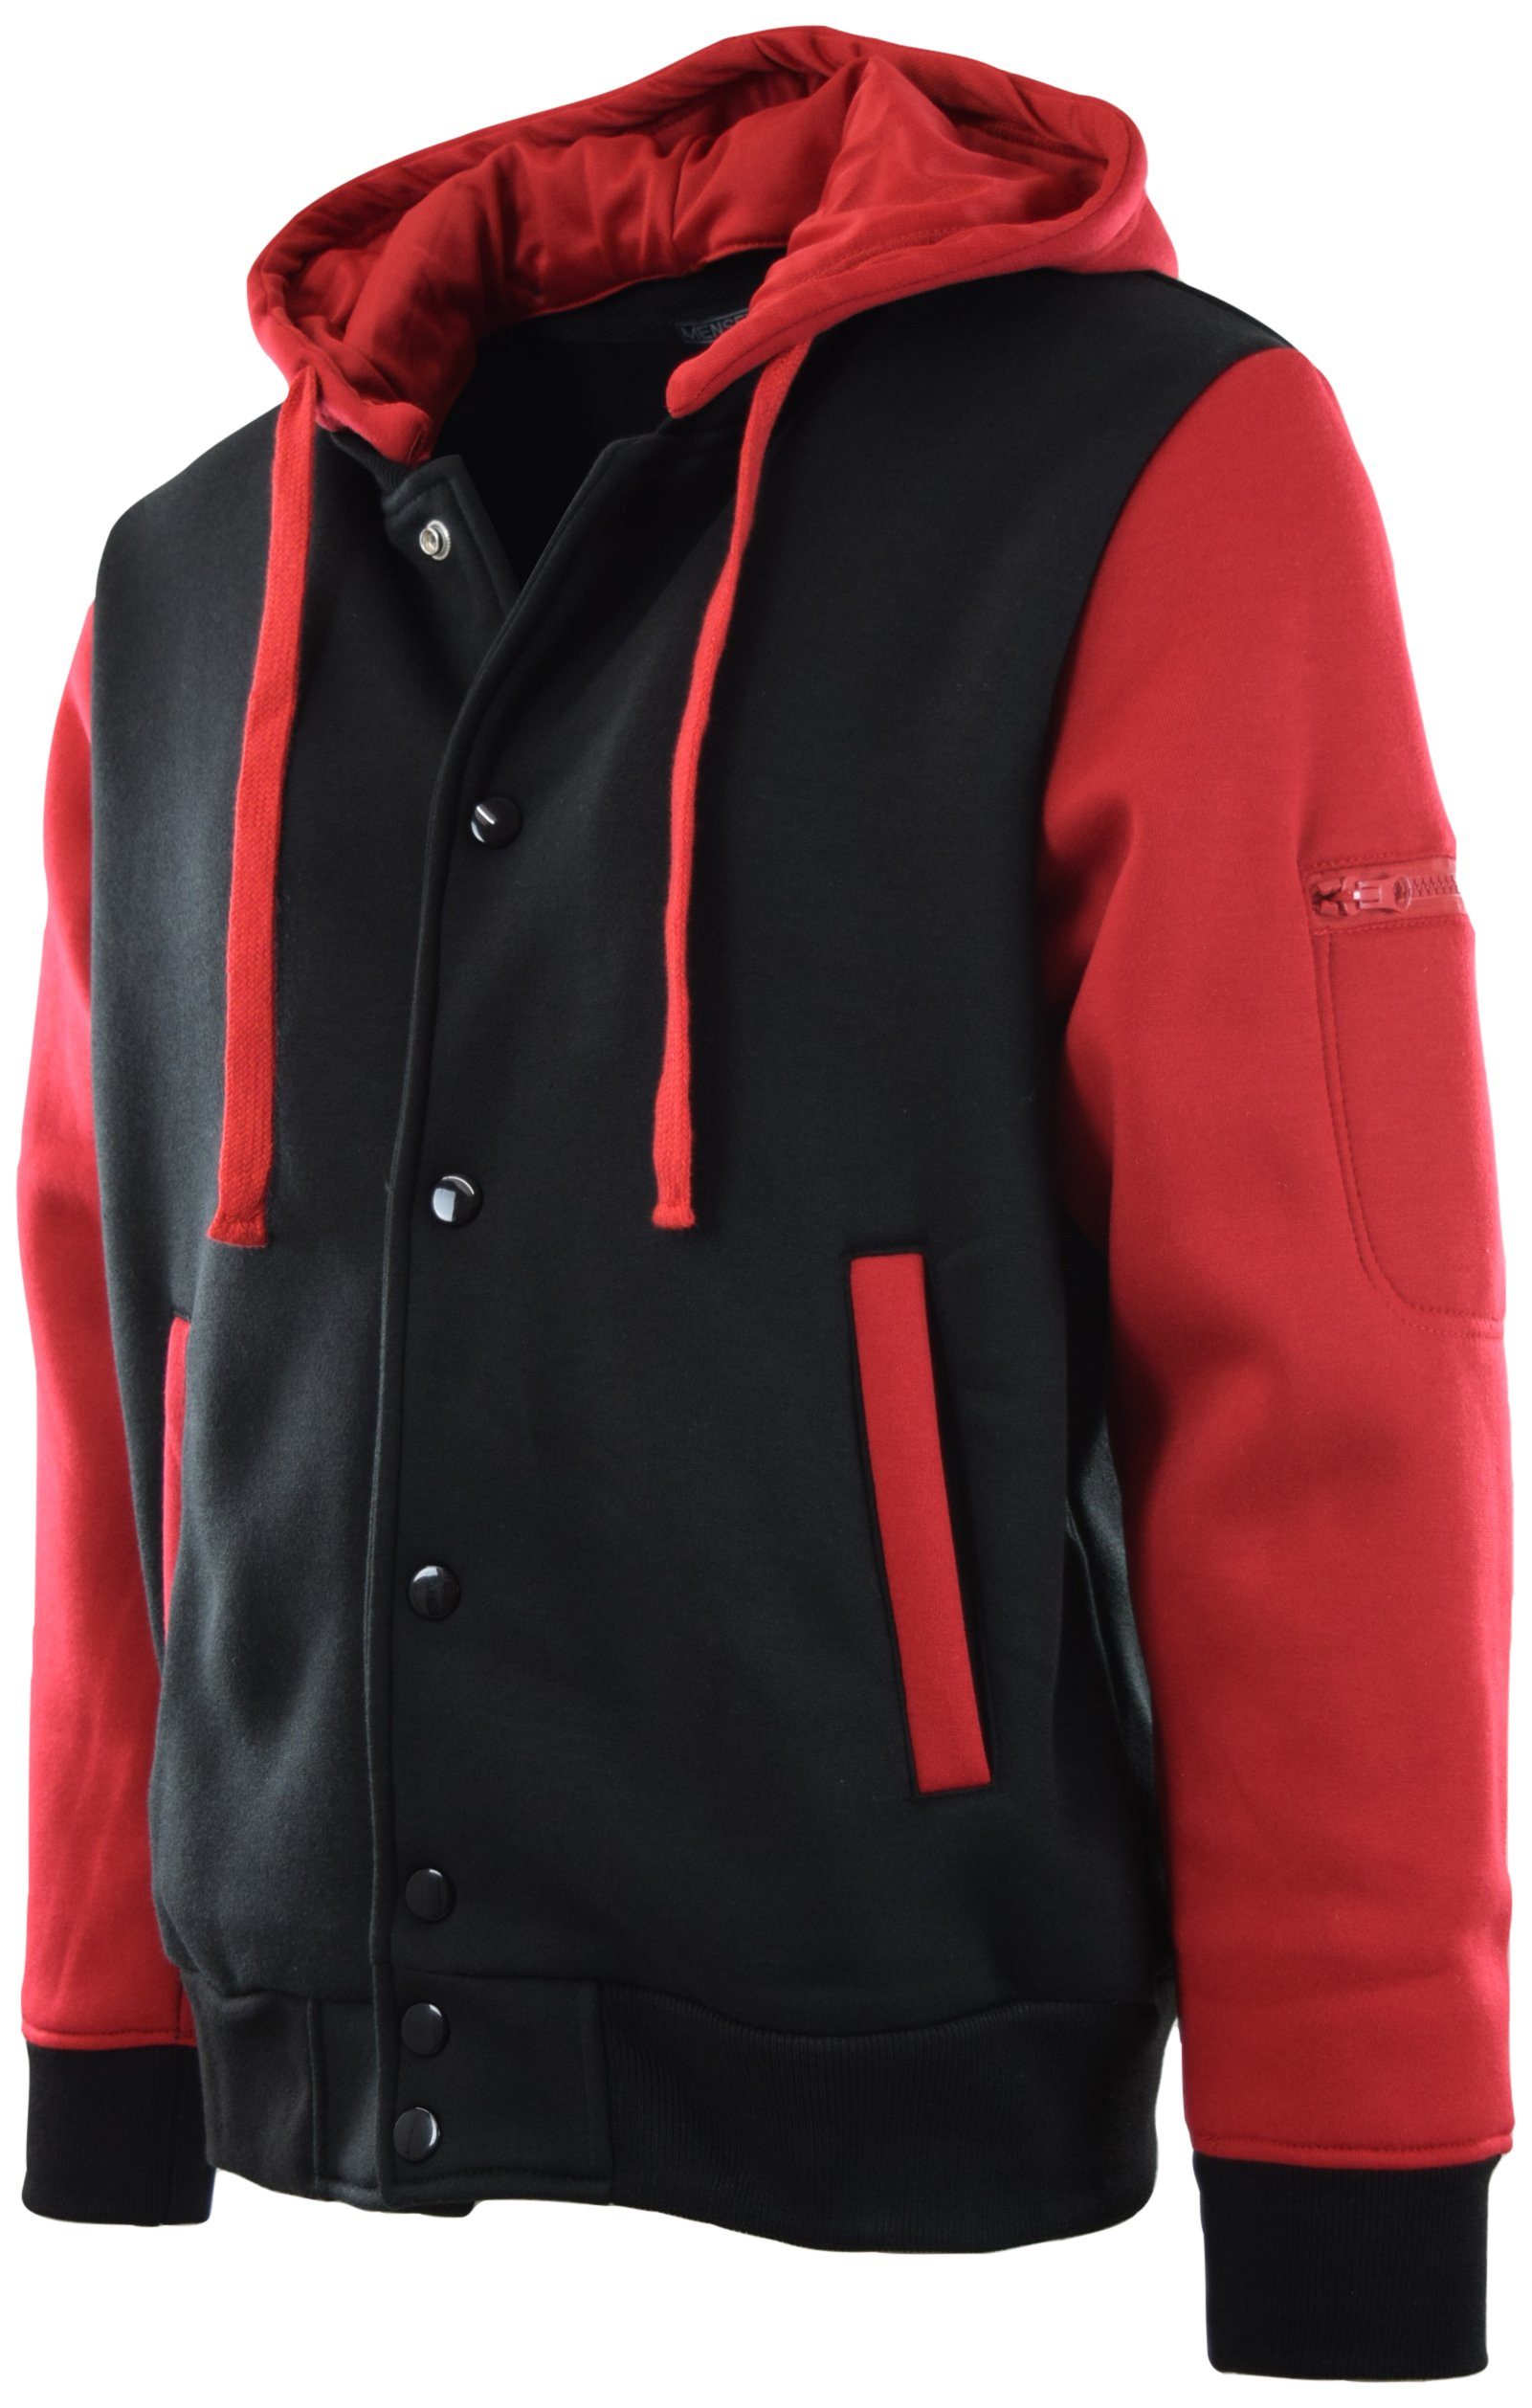 ChoiceApparel Mens Baseball Varsity Jacket with Detachable Hoodie (L, 901-Black/Red) by ChoiceApparel